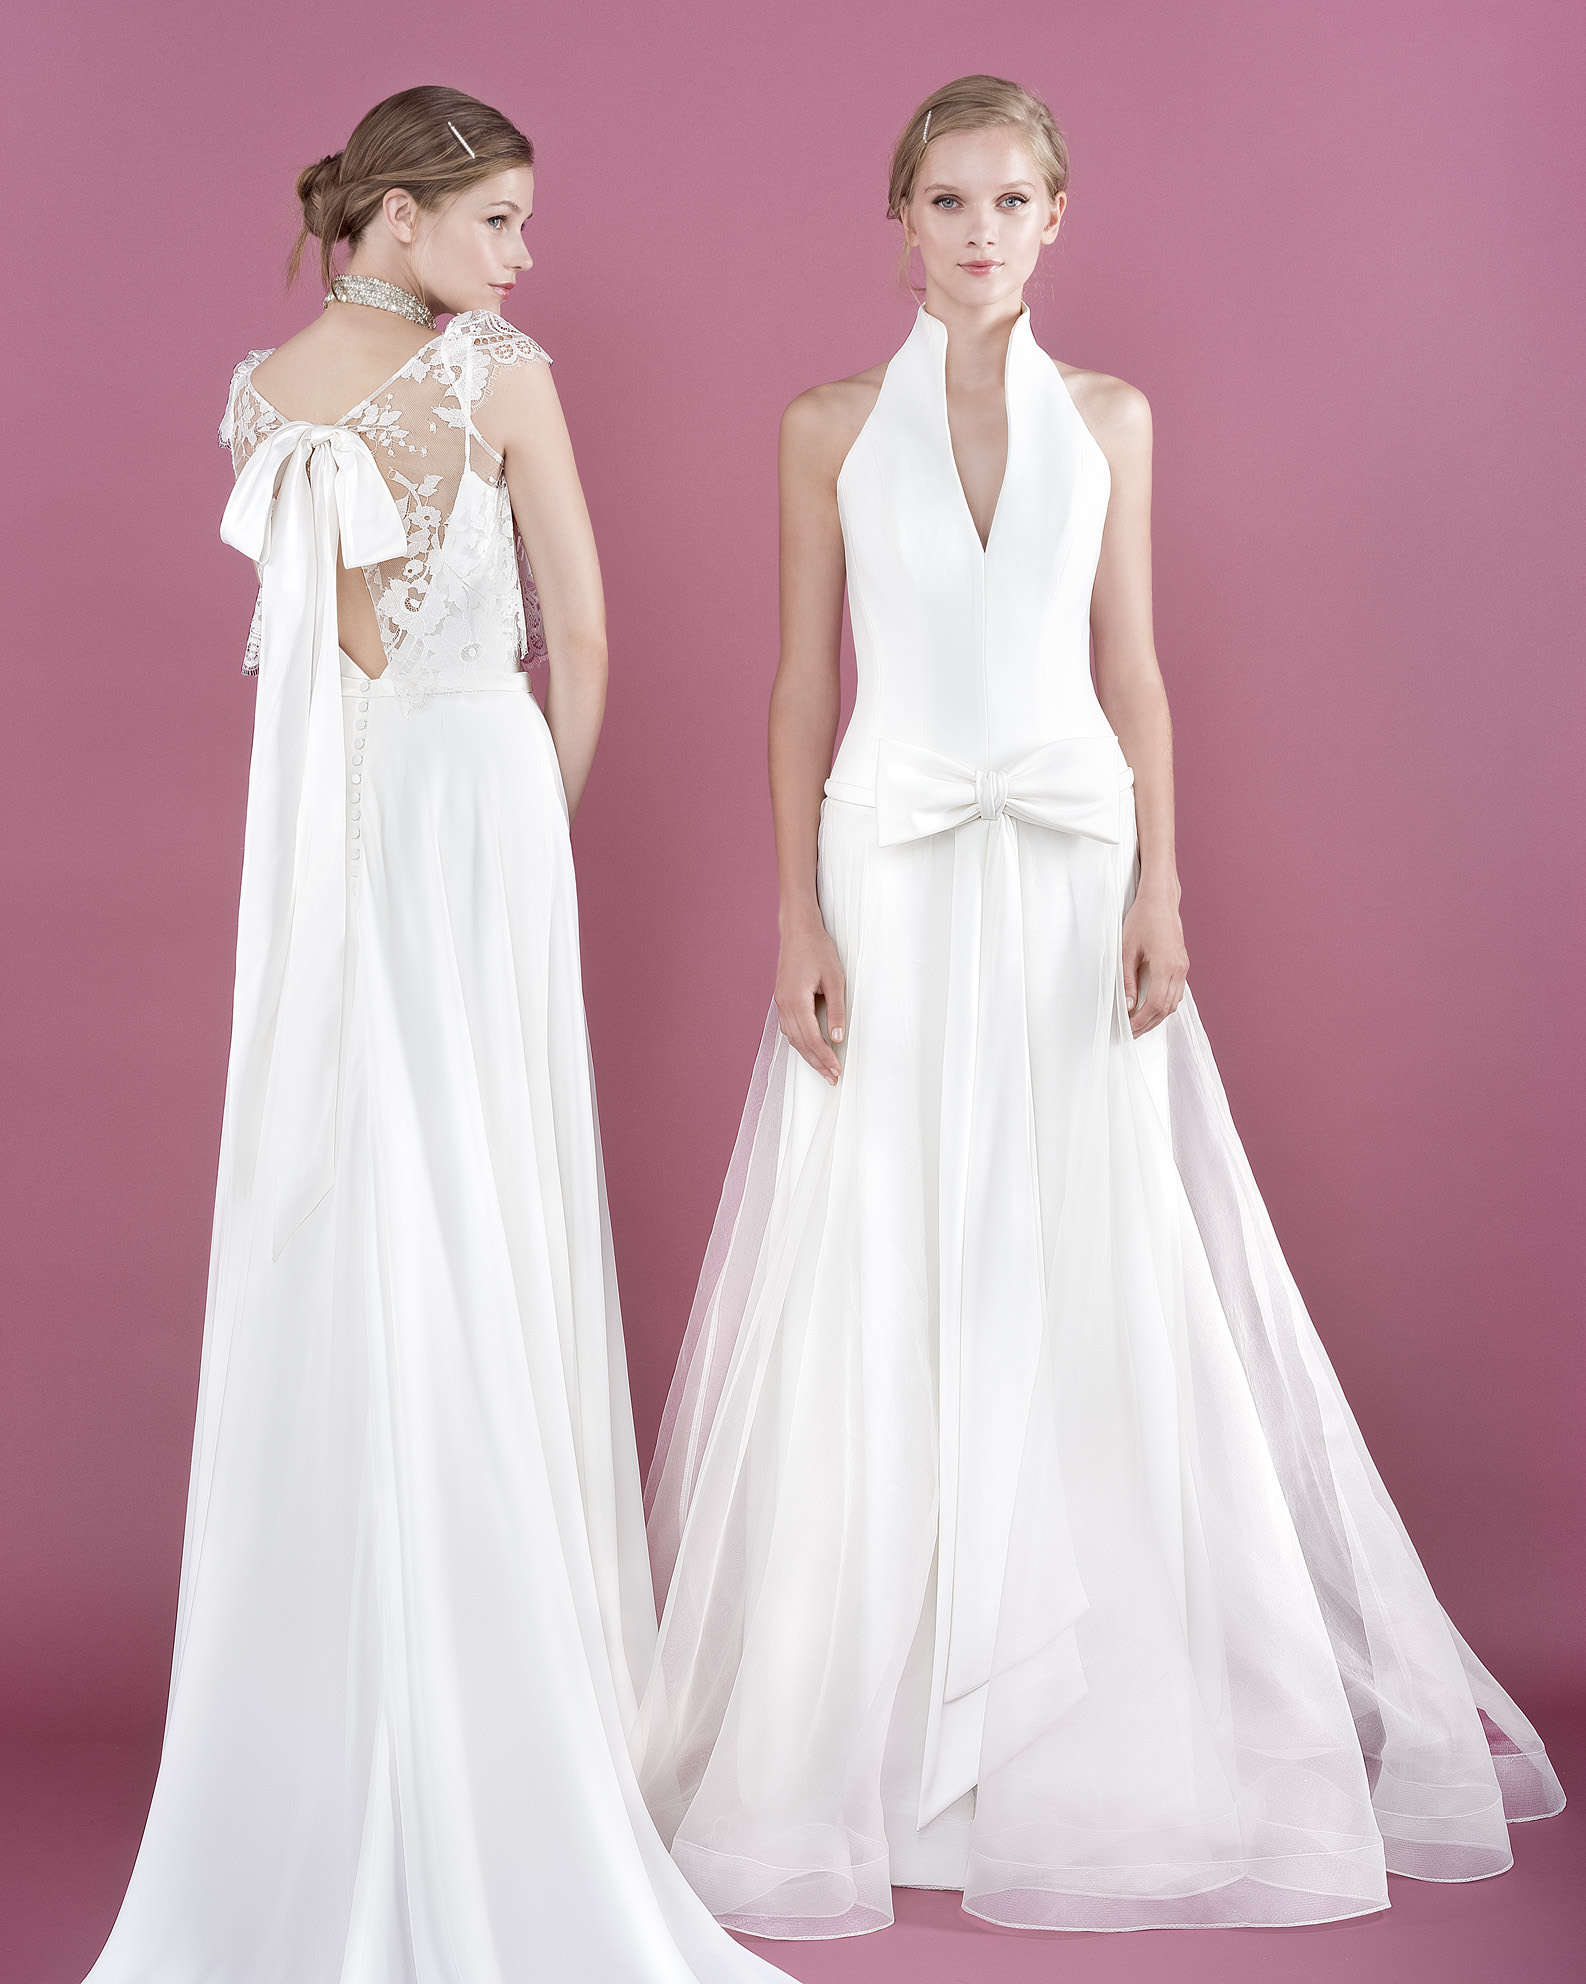 Bridal Style The New Mirtilli Collection By Jesus Peiro Boho